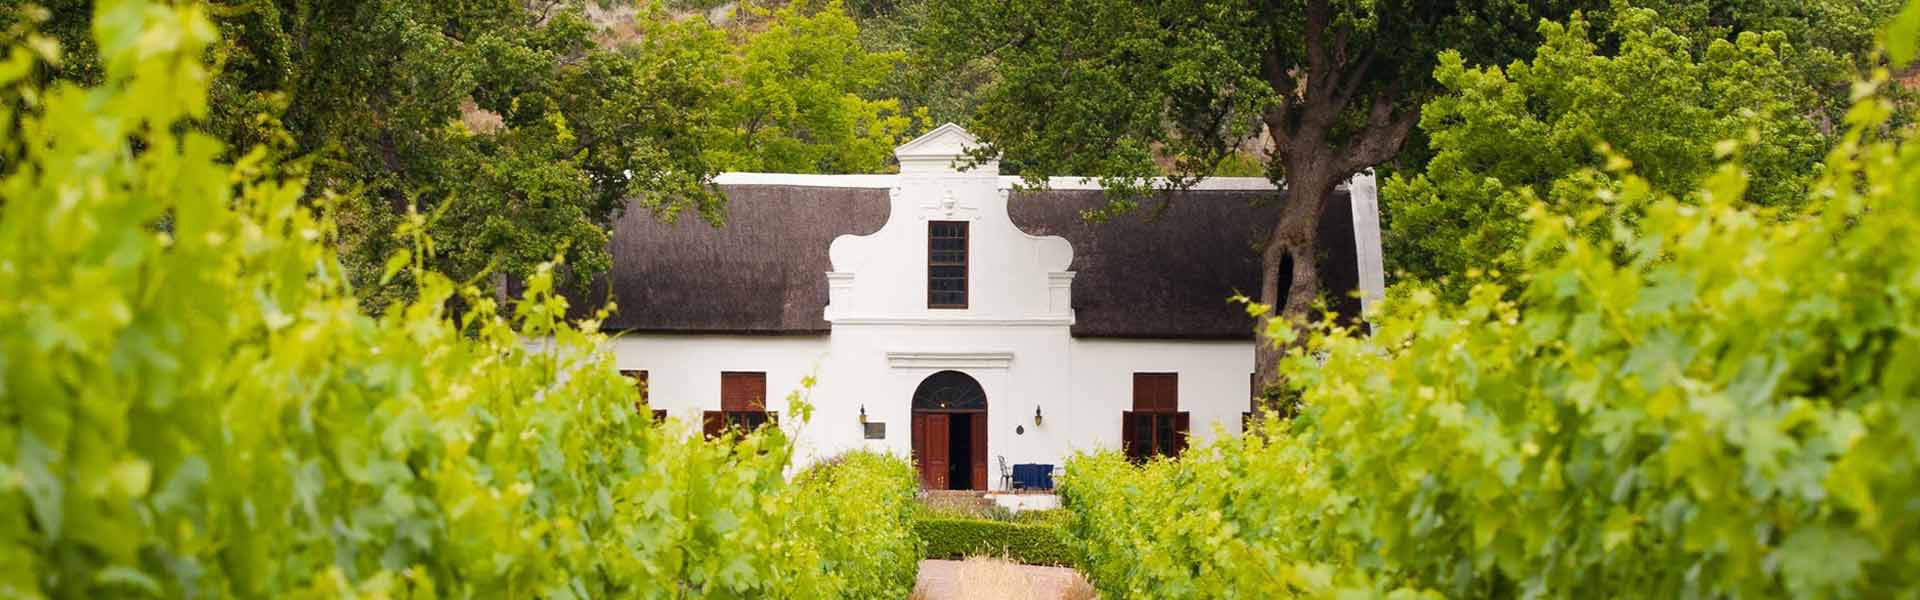 The Cape winelands of South Africa offer sophisticated charm with their Cape dutch architecture